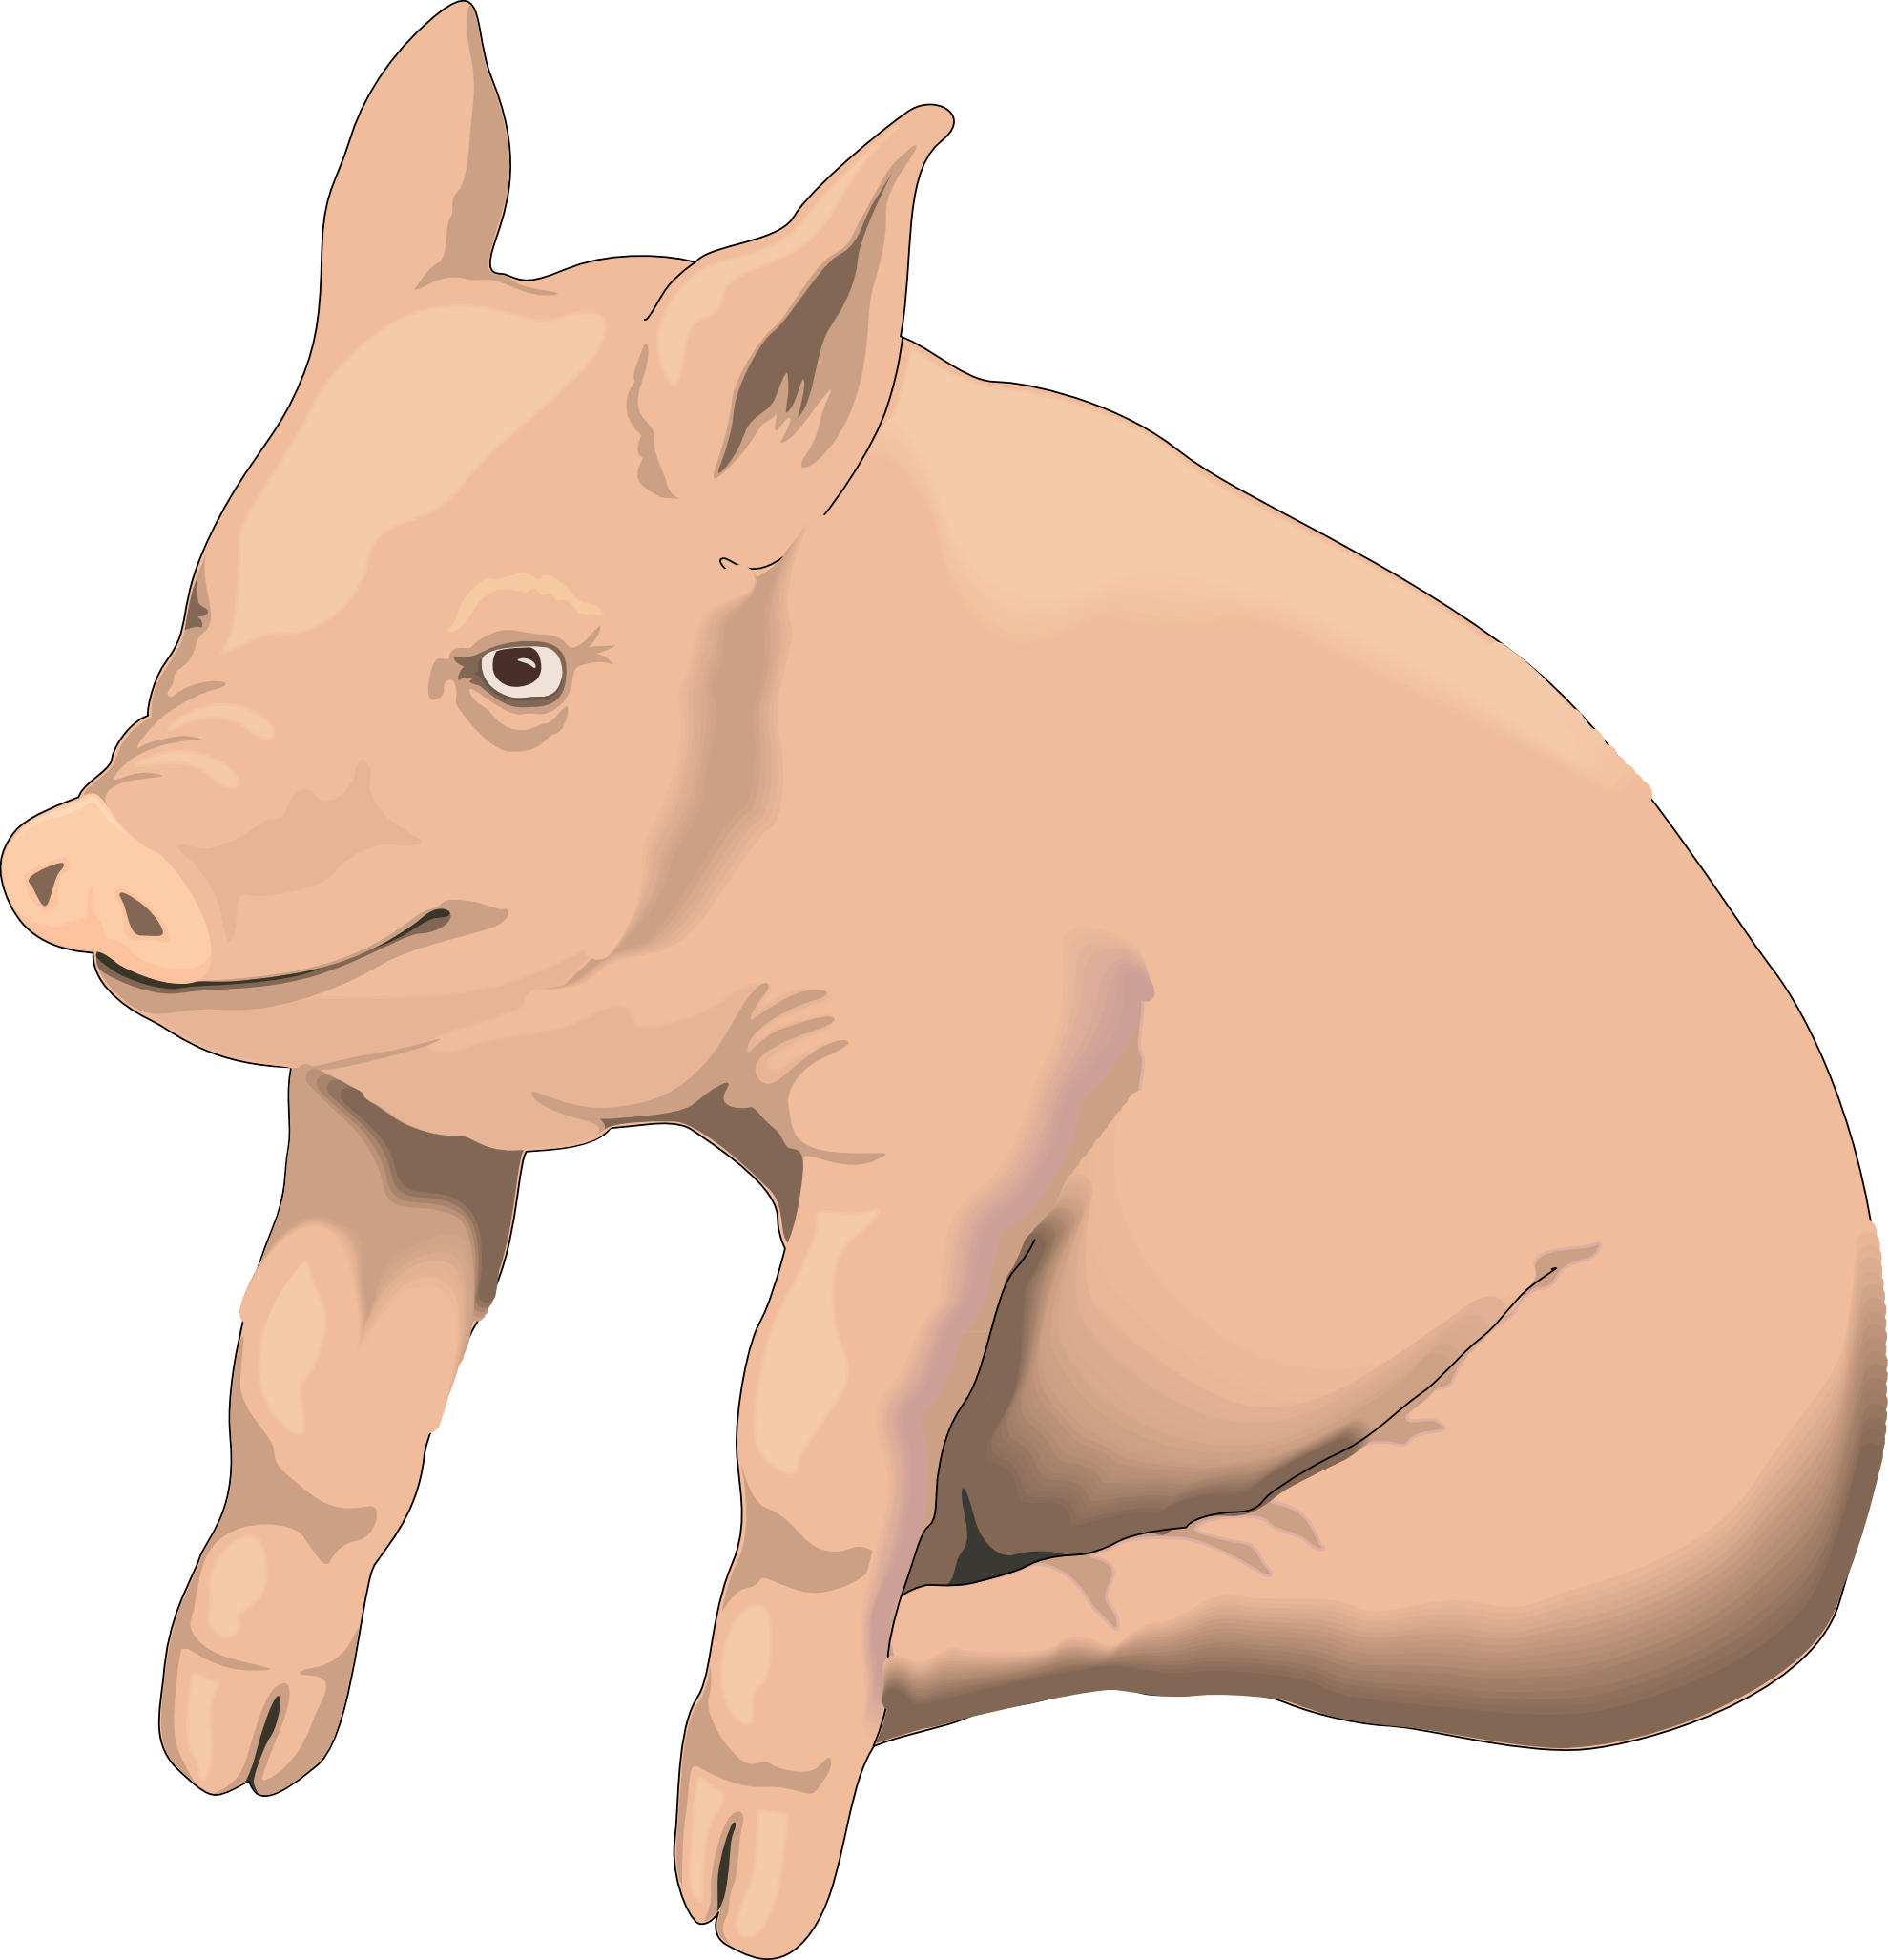 Picture Pig Png Image - Hog Head, Transparent background PNG HD thumbnail